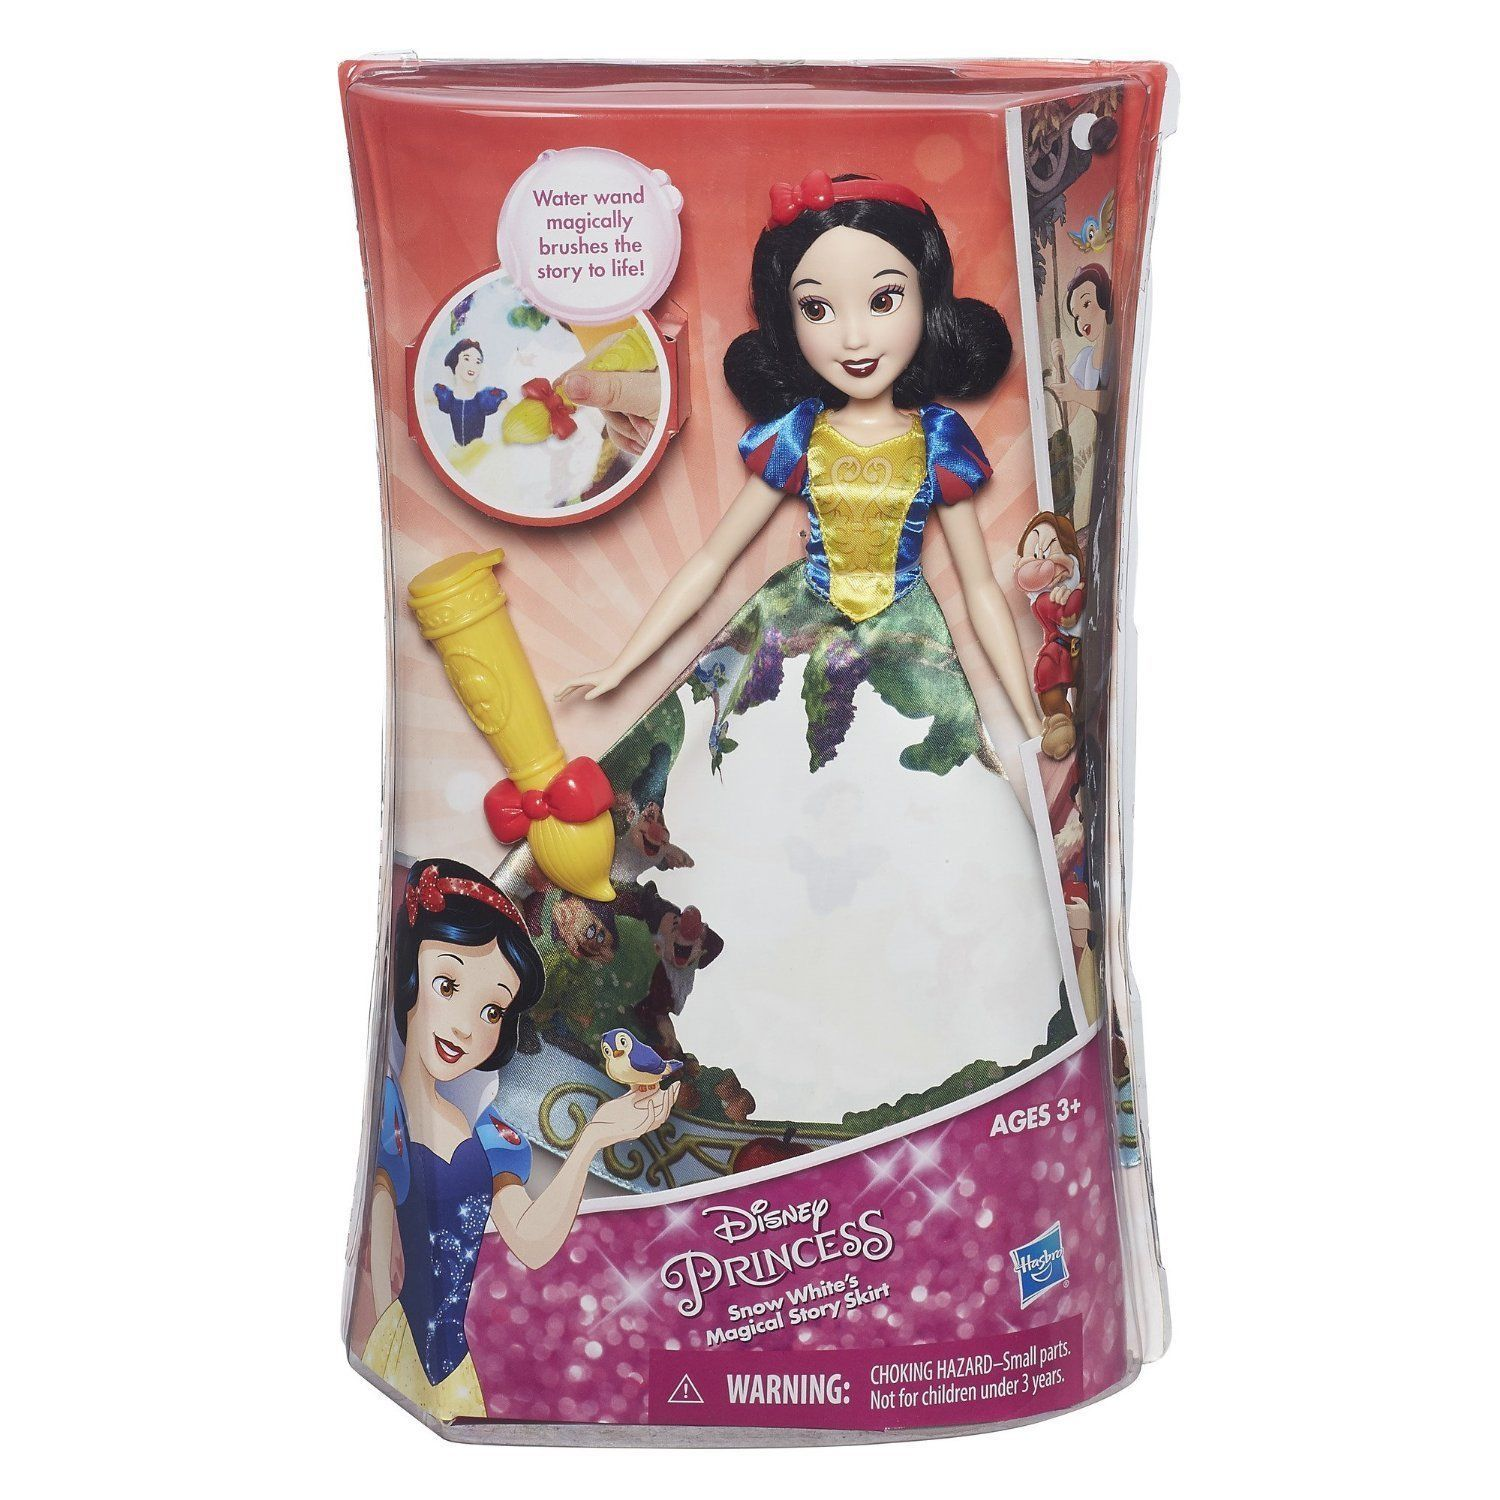 Image 2 of Disney Princess Snow White Magical Story Skirt Doll in Blue, Yellow by Hasbro